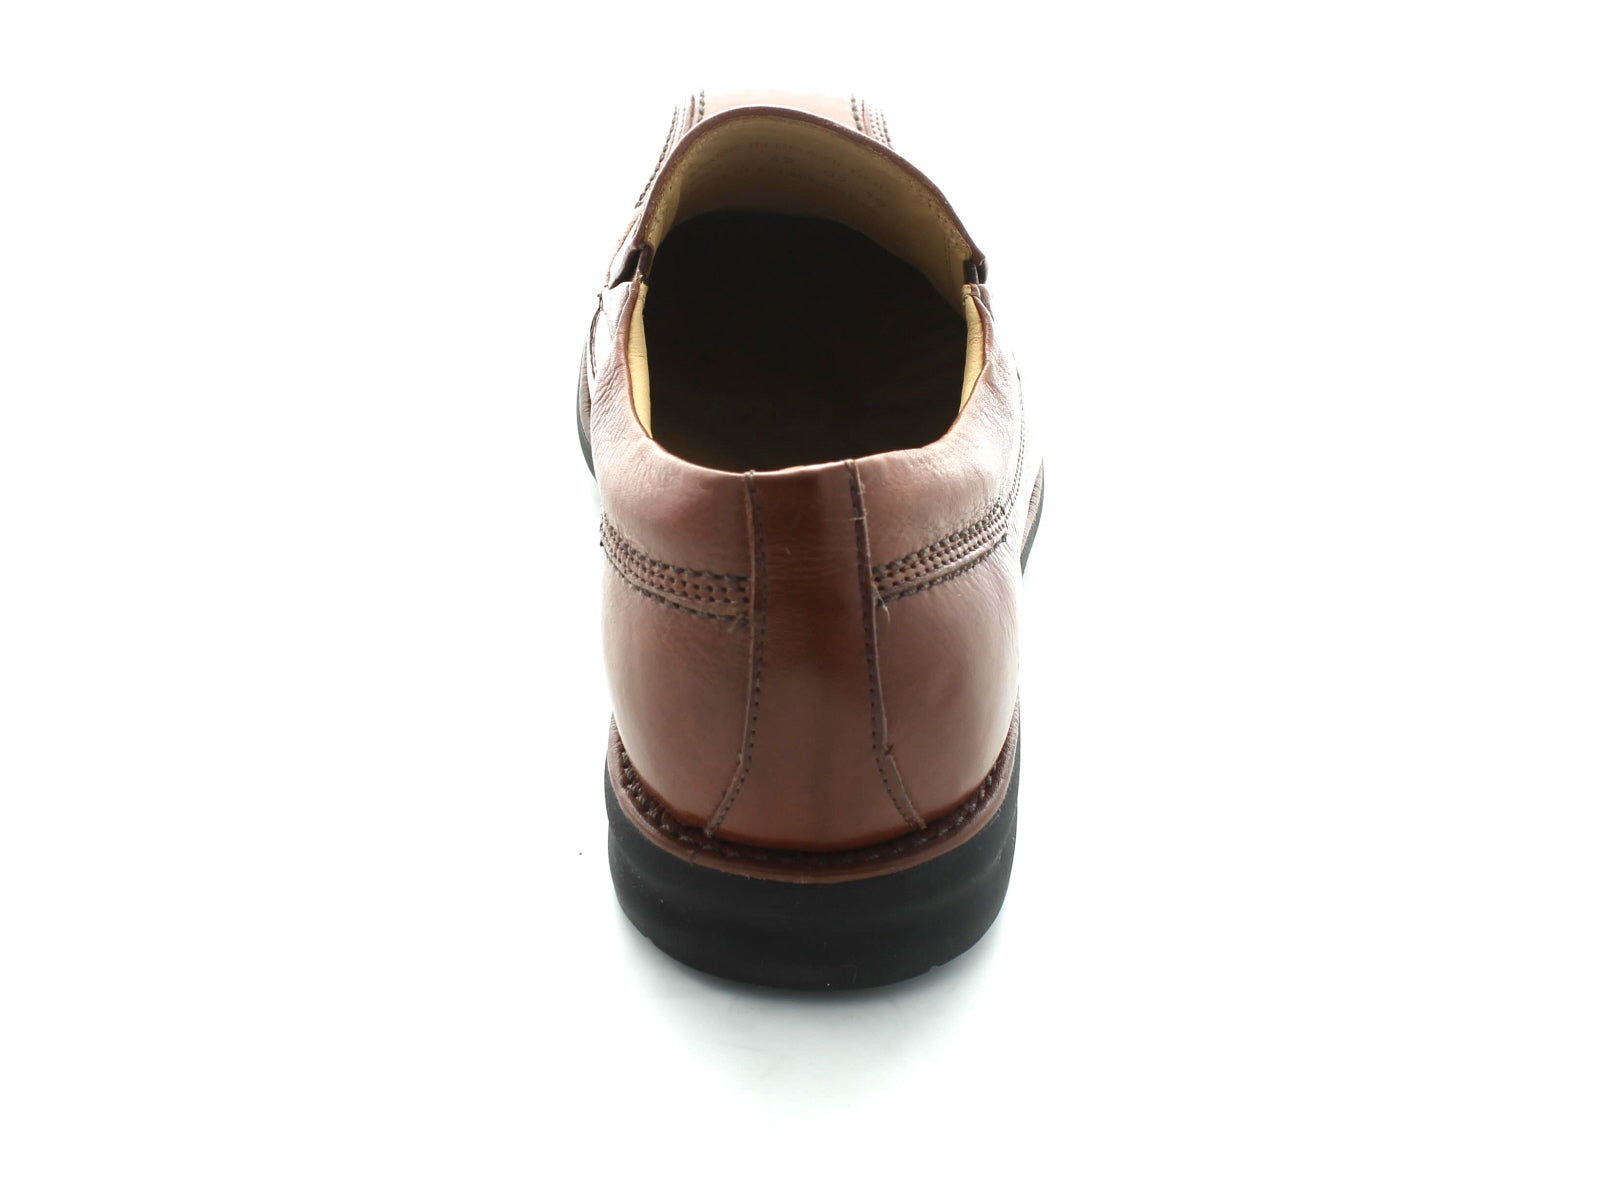 Anatomic & Co Belem in Tan Leather back view